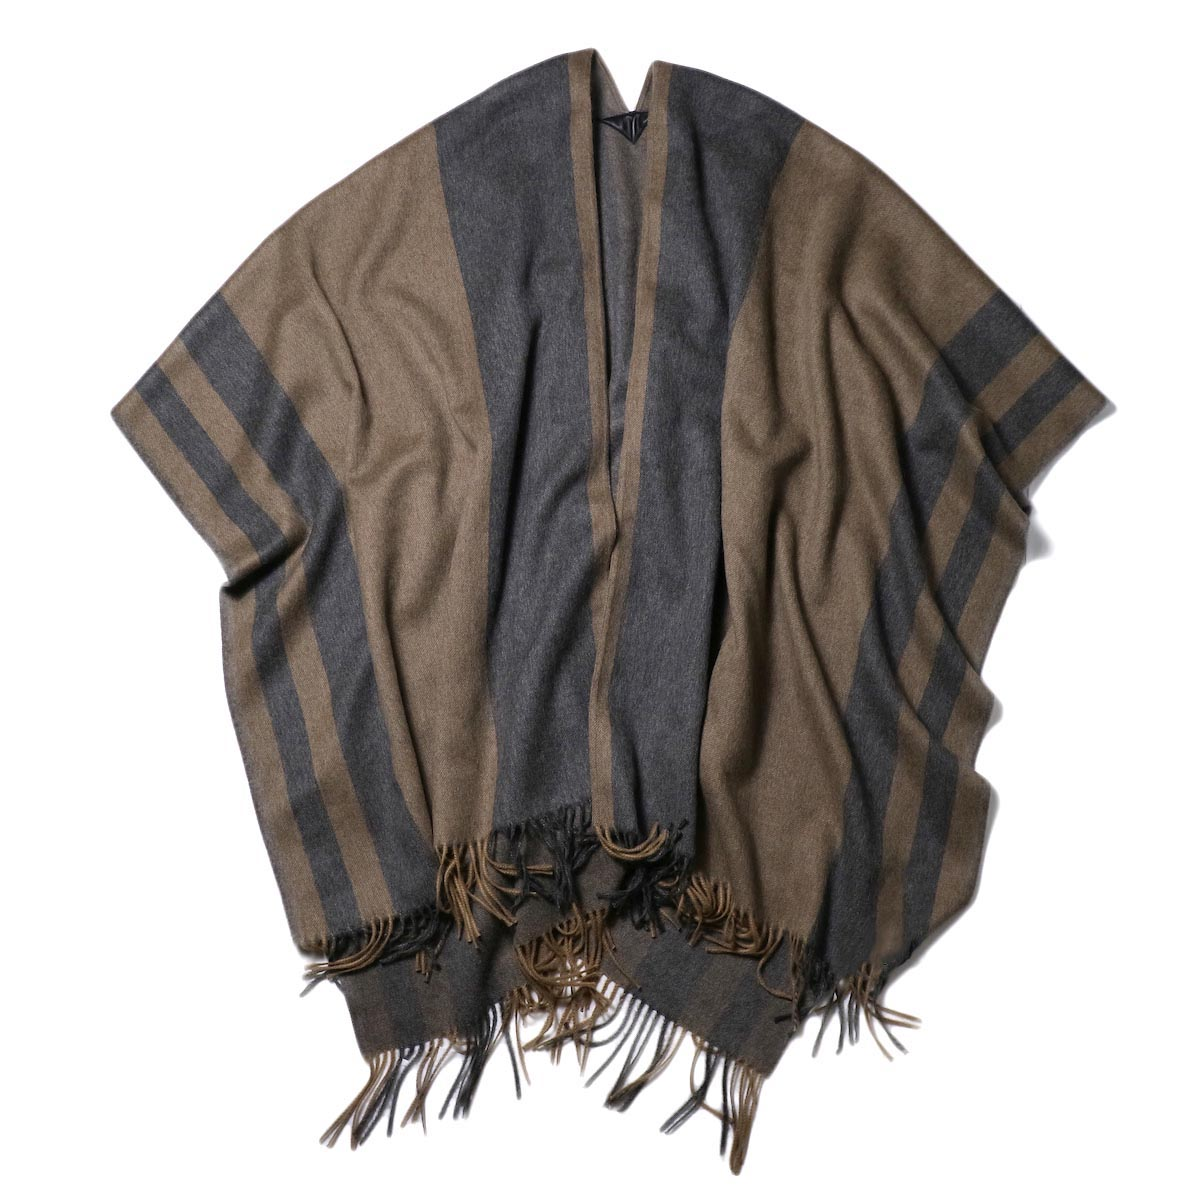 YLEVE / The Inoue Brothers Double Face Brushed Poncho (khaki beige)